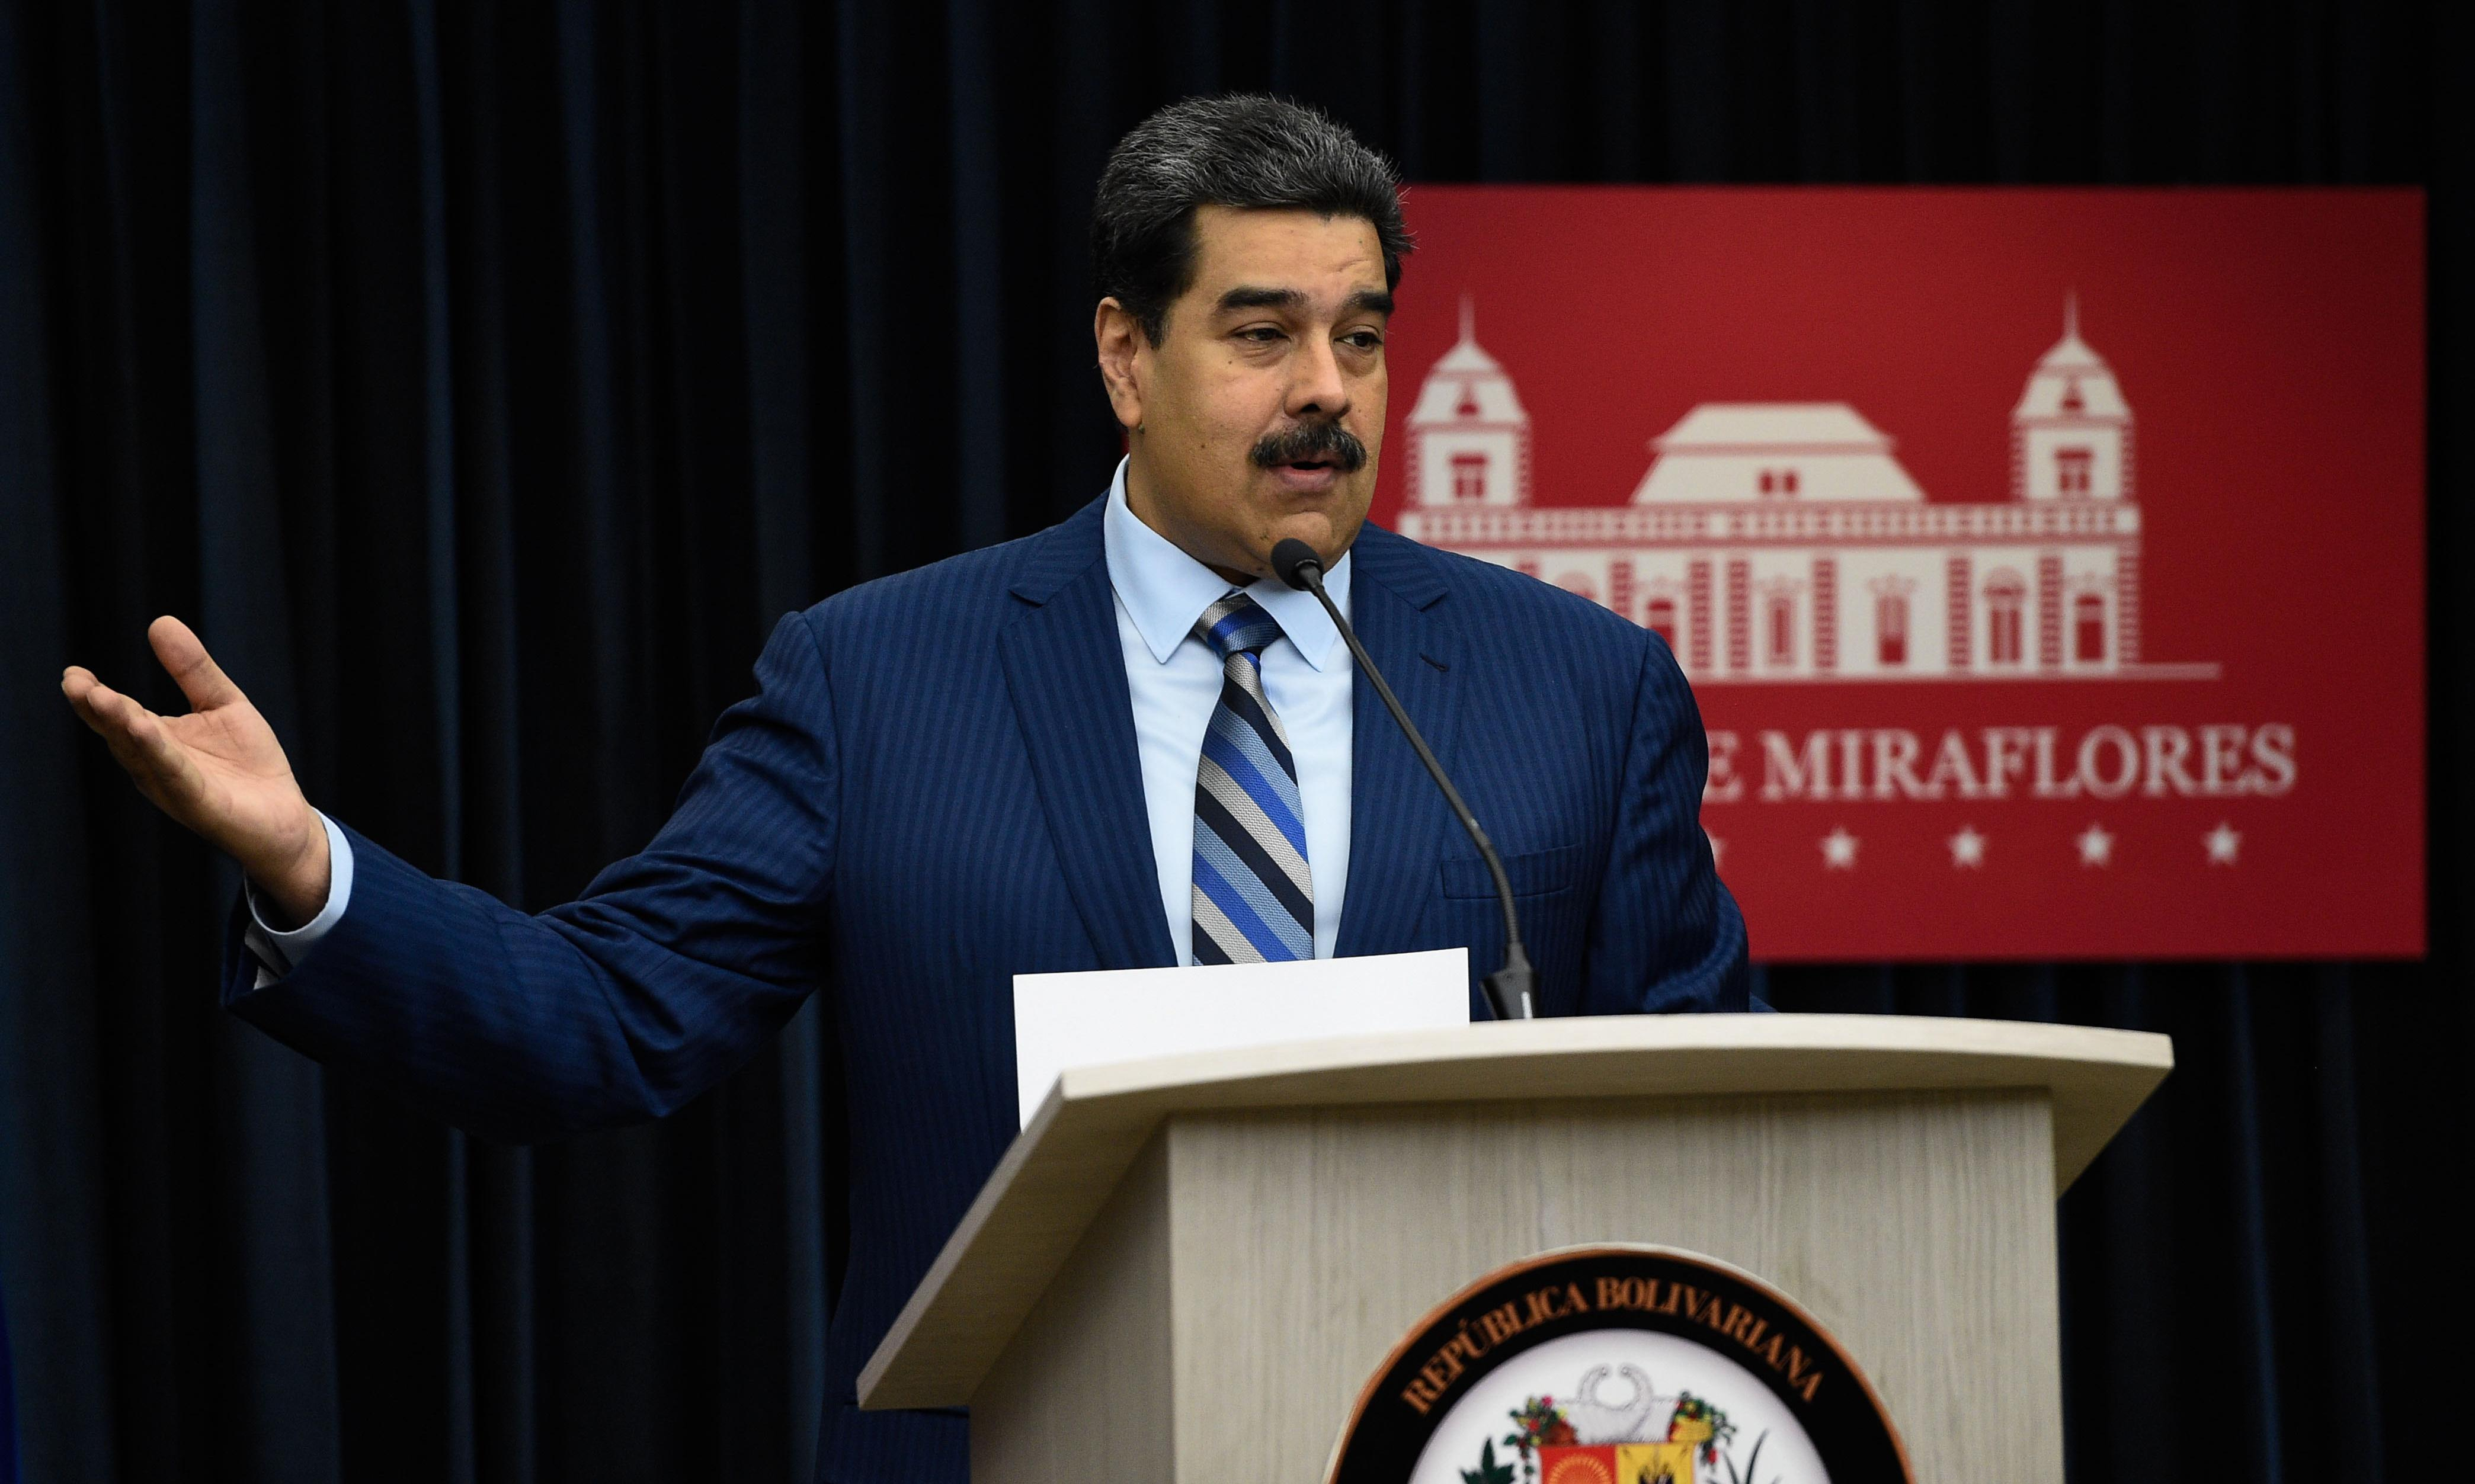 Nicolás Maduro accuses White House of direct role in assassination attempt